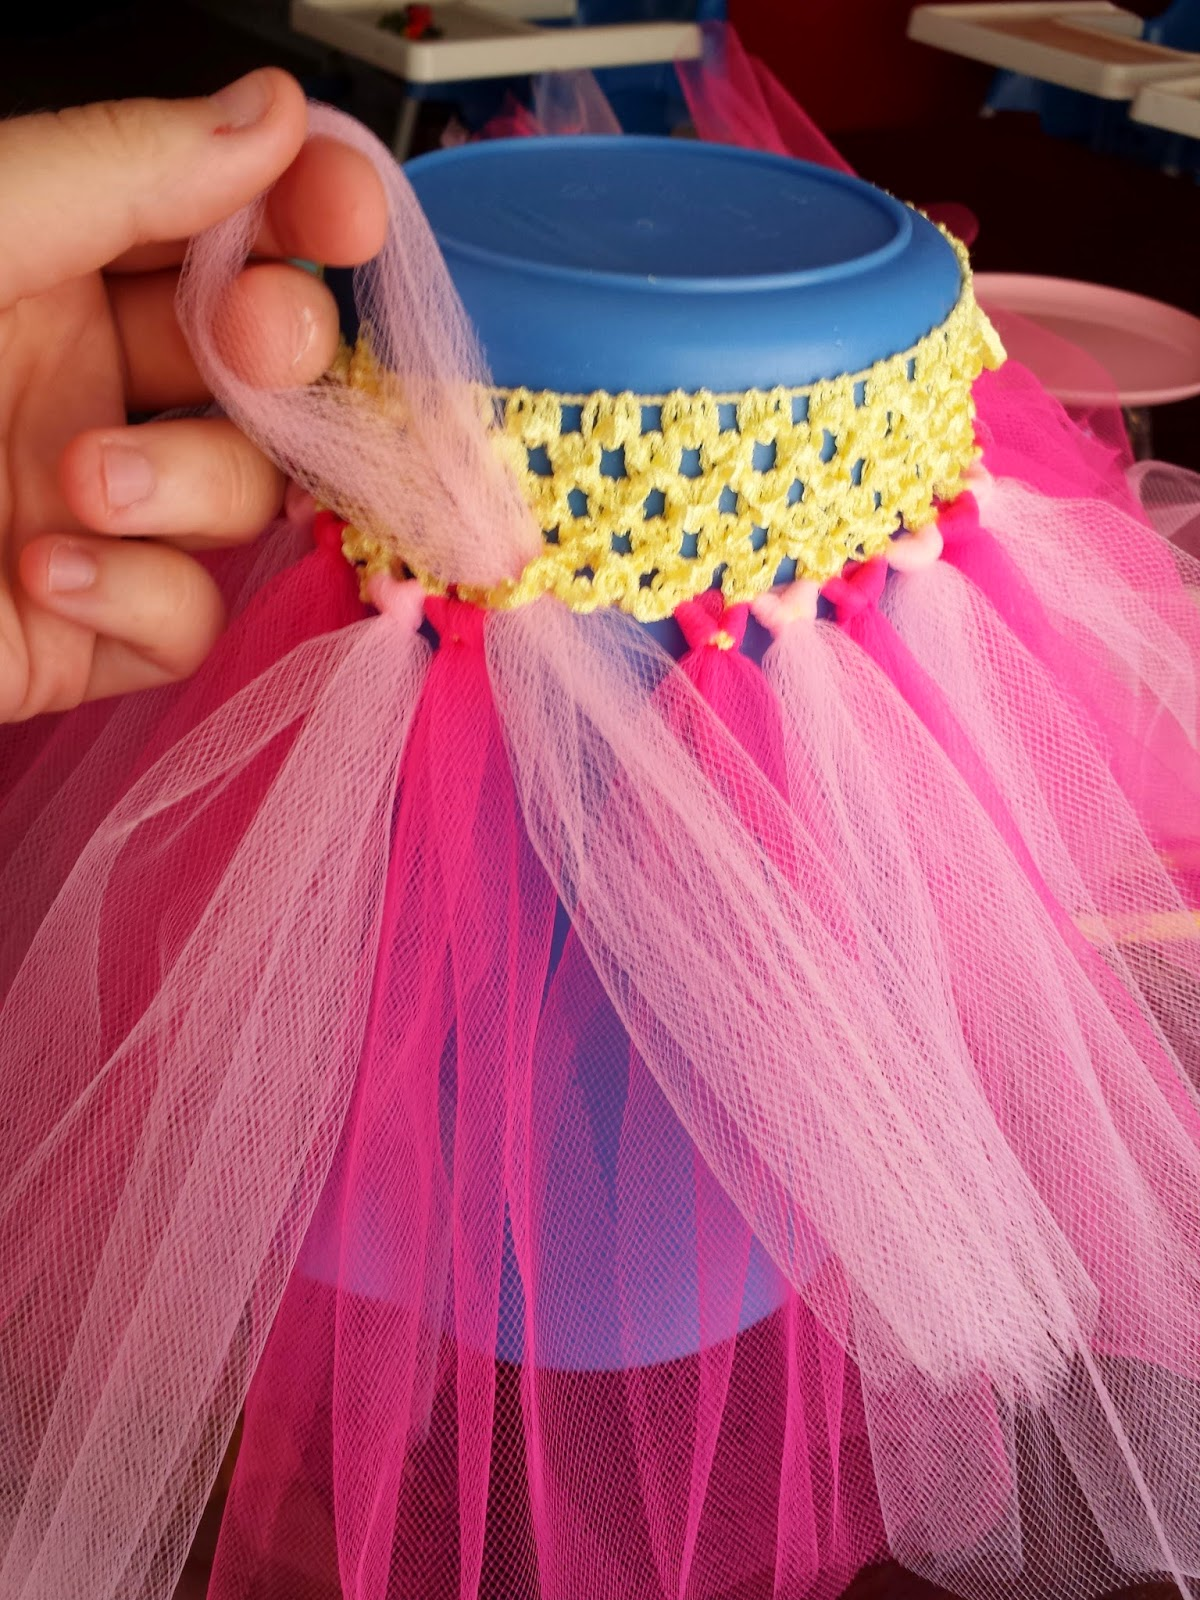 Dec 08,  · What little girl wouldn't want a tutu for christmas!? ↓↓↓ Click for more! ↓↓↓.